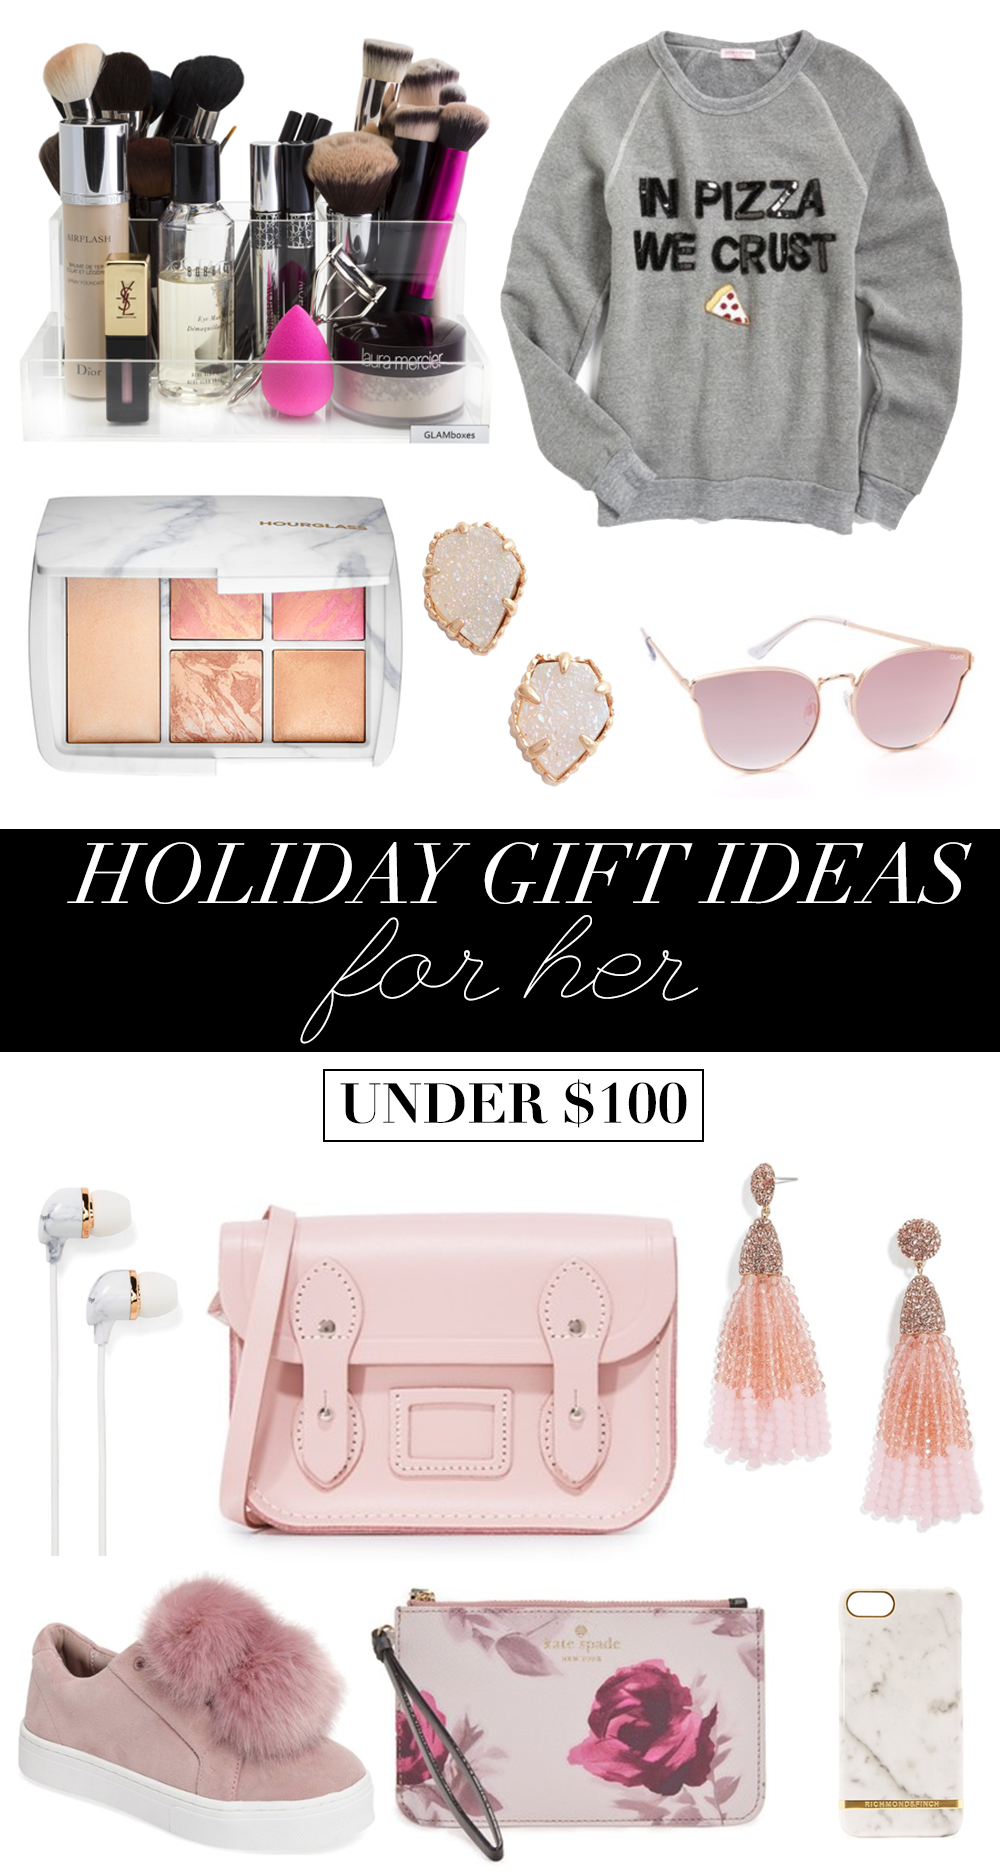 Christmas Presents For Women.Holiday Gift Ideas For Her Under 100 Gift Guide For